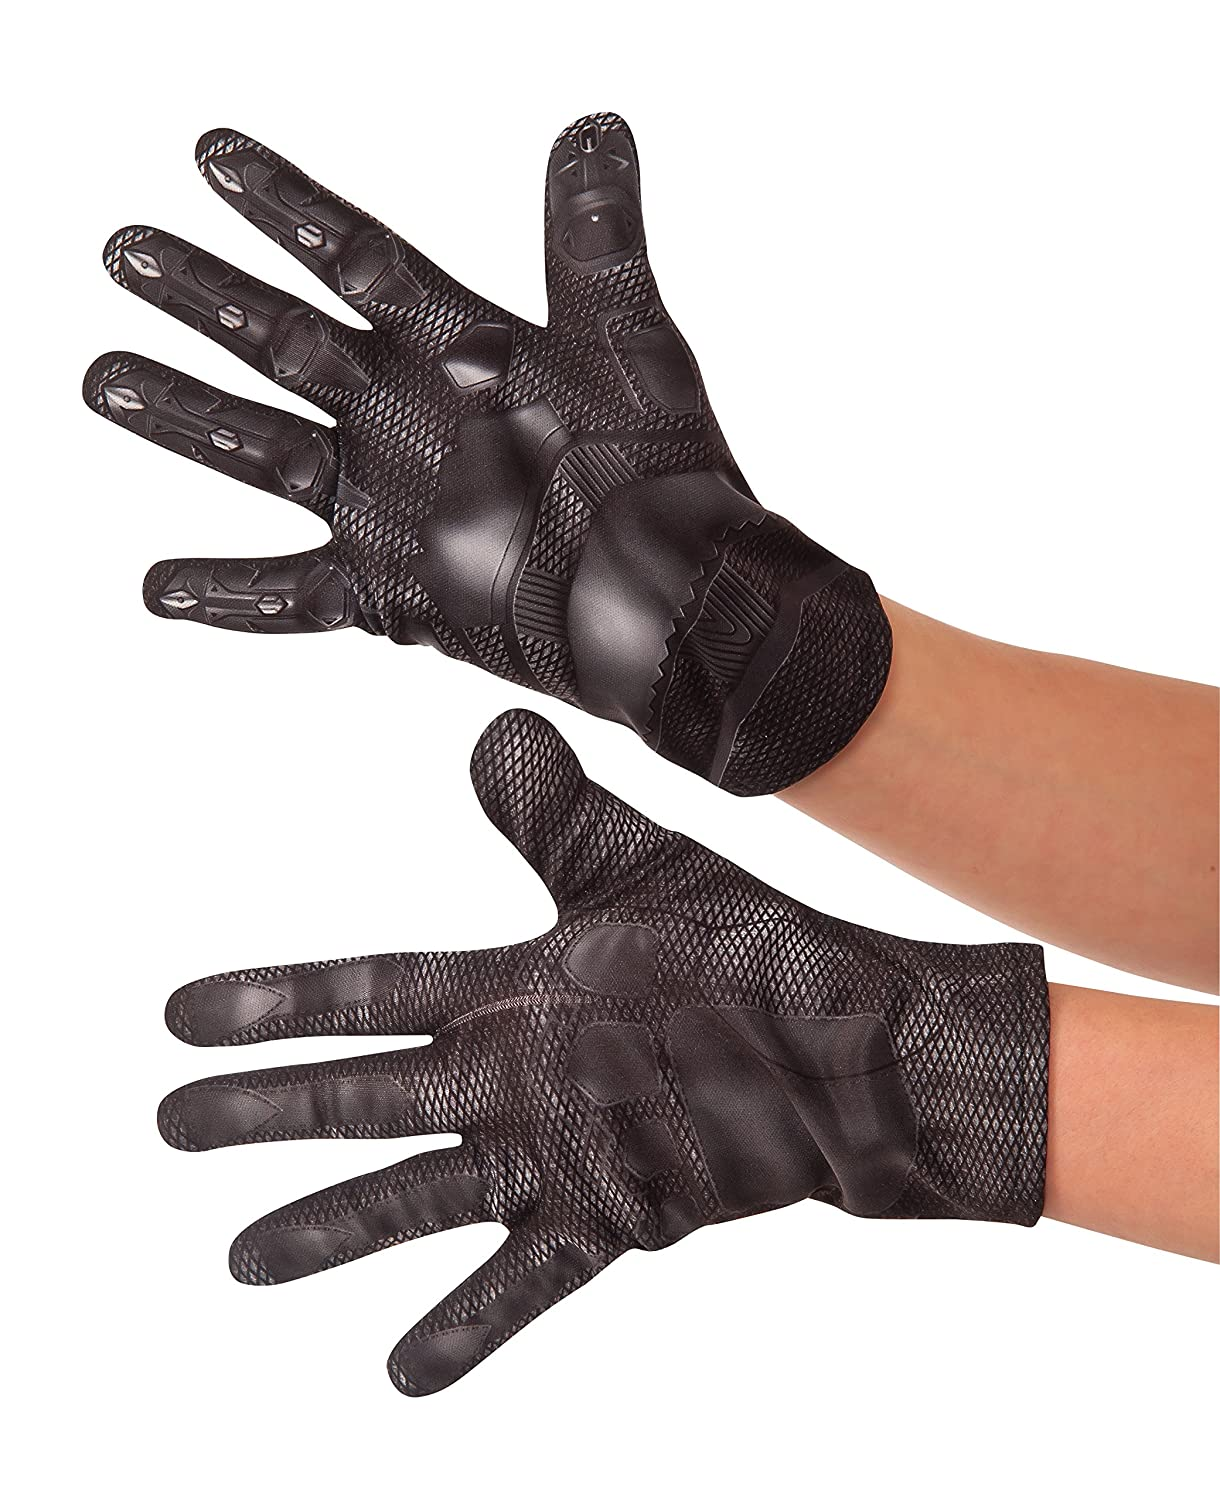 Captain America: Civil War Kid's Black Panther Gloves